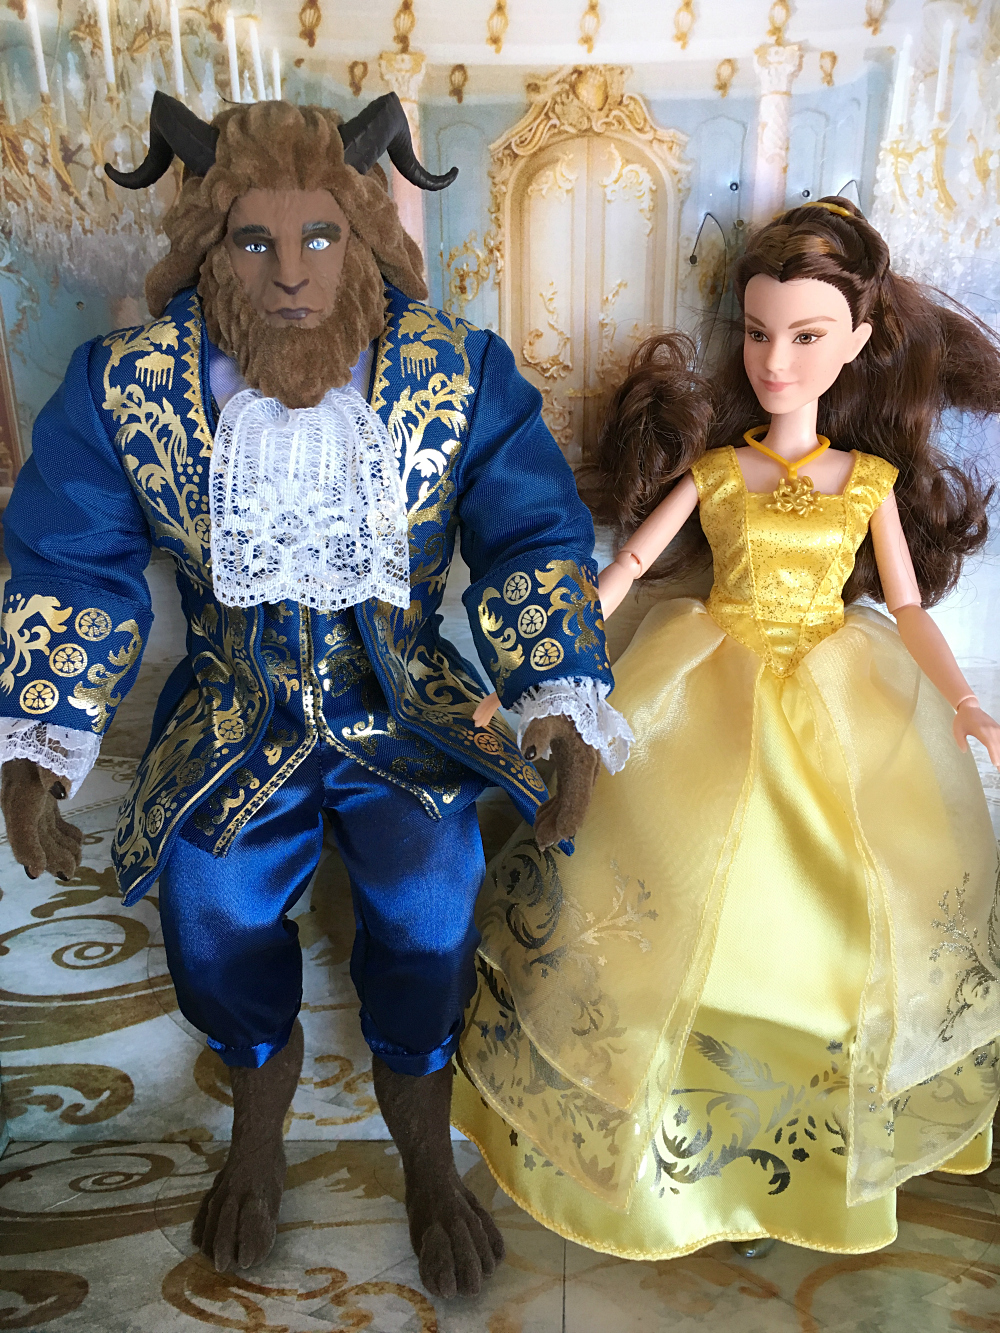 Disneys Beauty And The Beast Truly Is A Tale As Old As Time